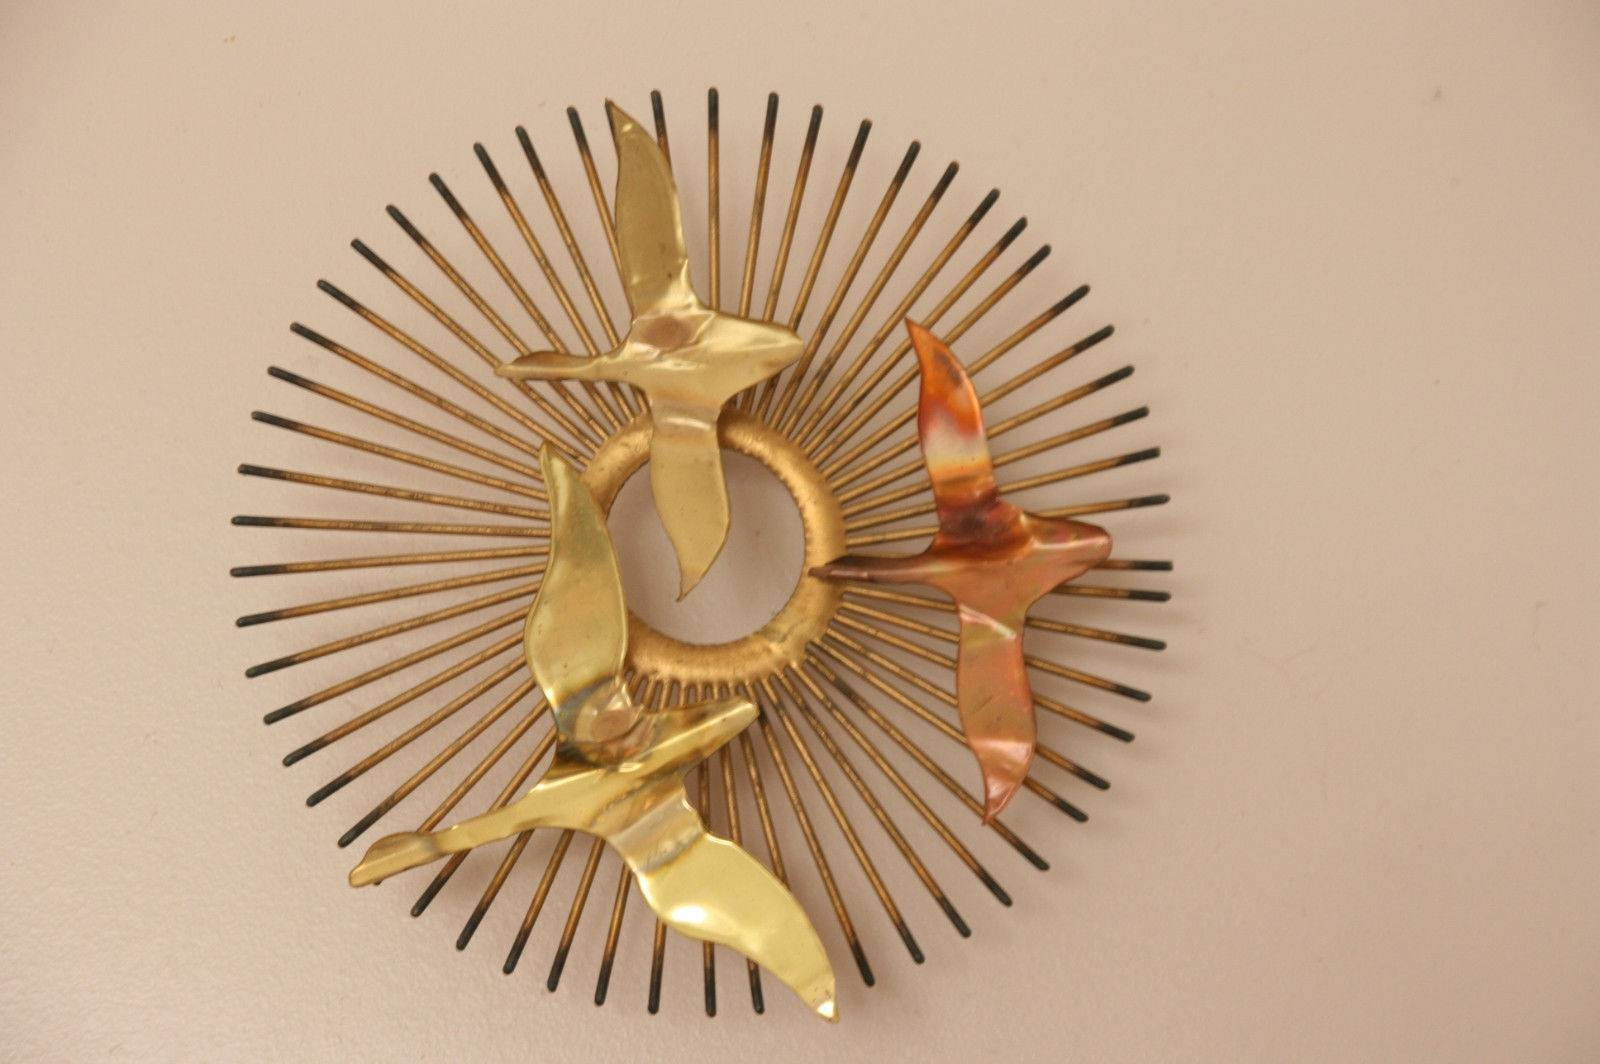 Metal Wall Art Sculpture Bird Sunburst Midcentury Modern Starburst Throughout 2018 Mid Century Metal Wall Art (View 5 of 20)